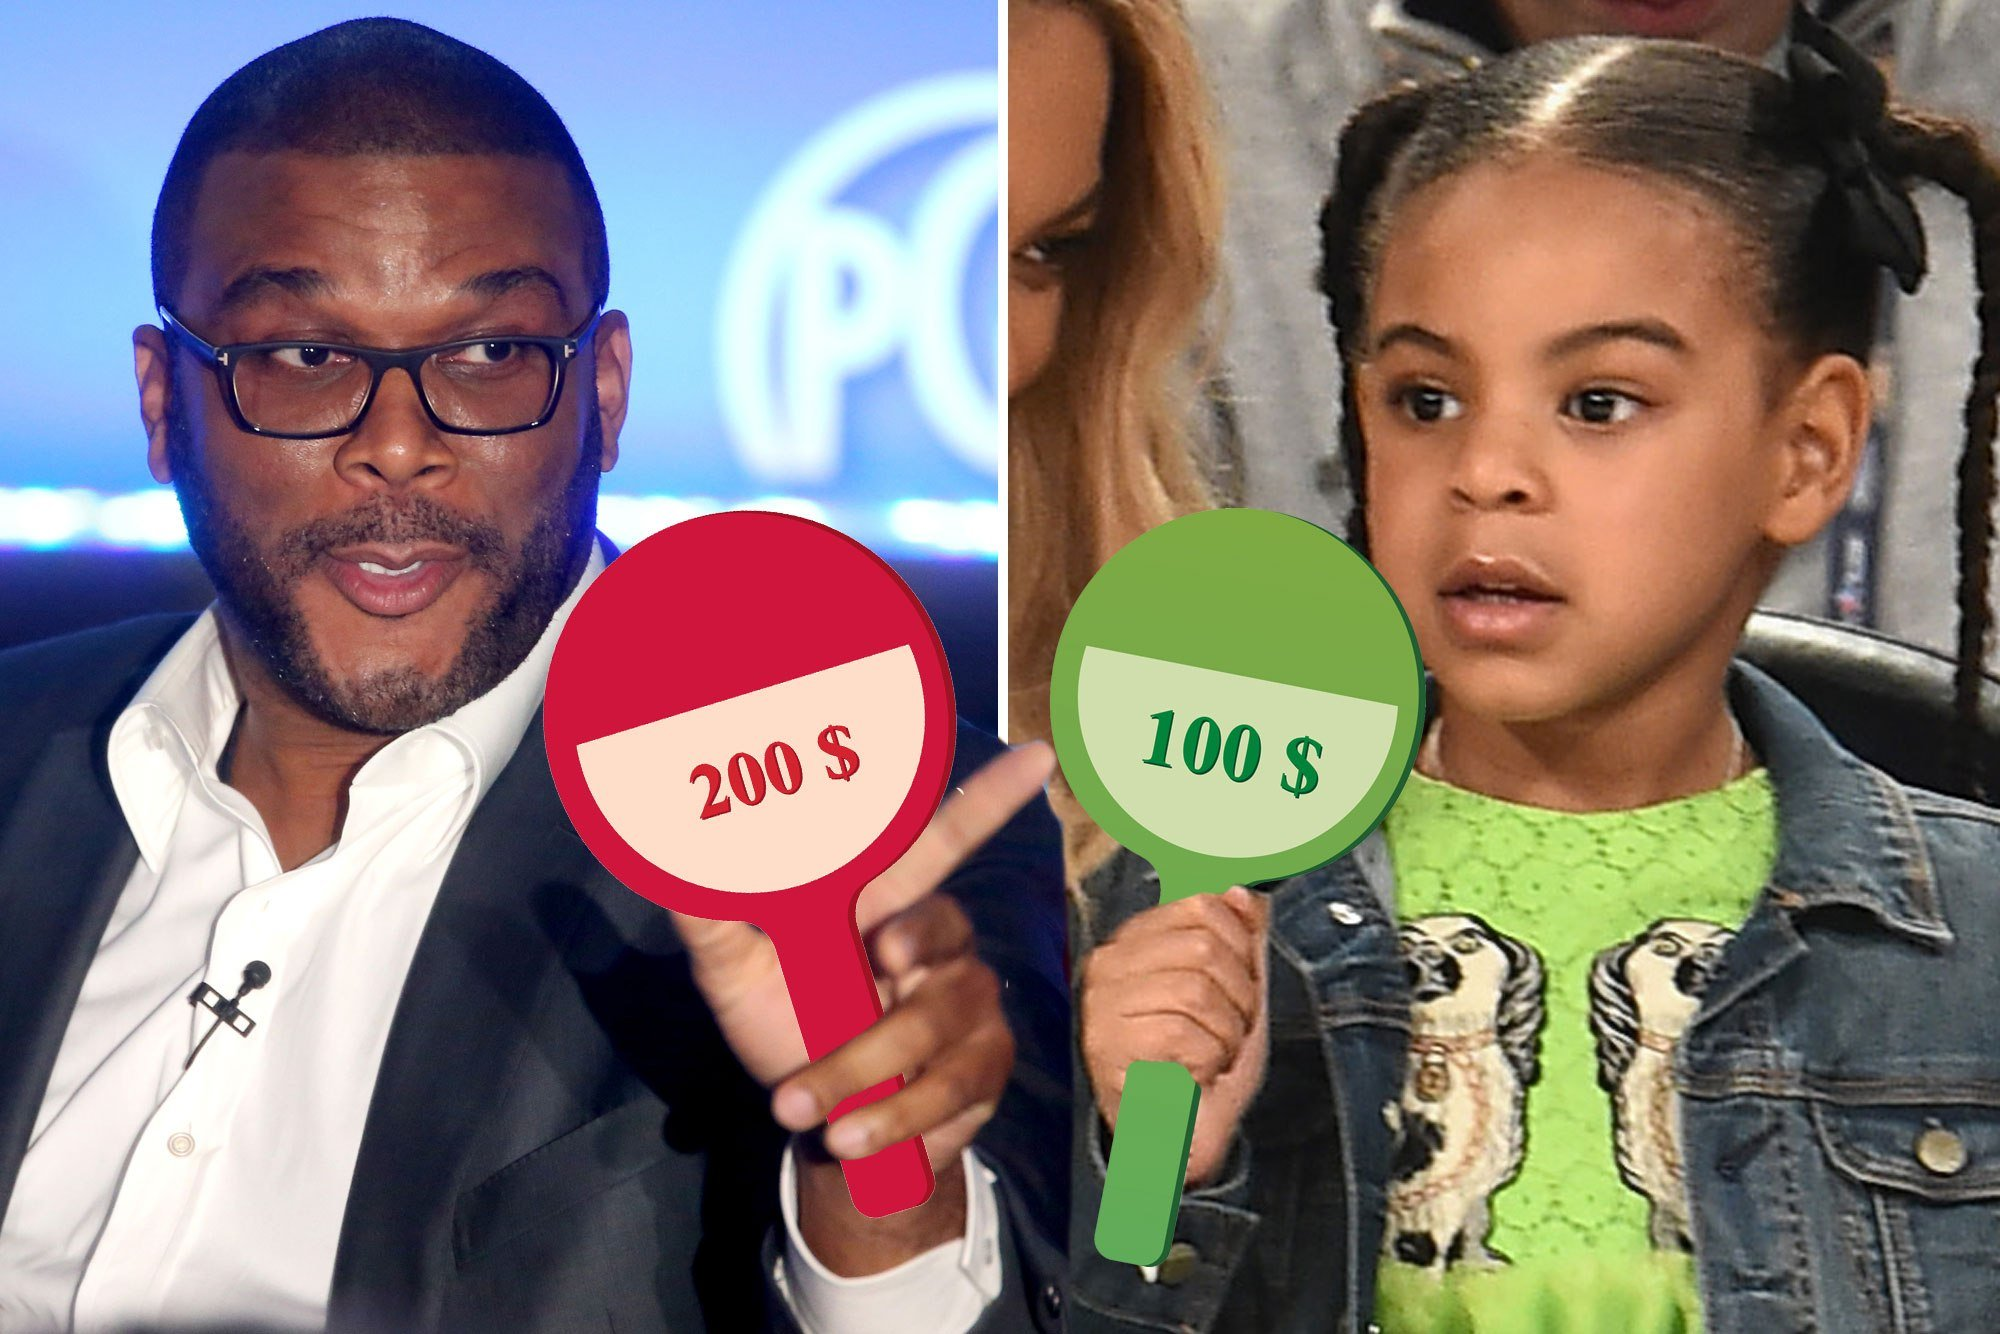 Tyler Perry couldn't be 'outdone' by Blue Ivy at auction